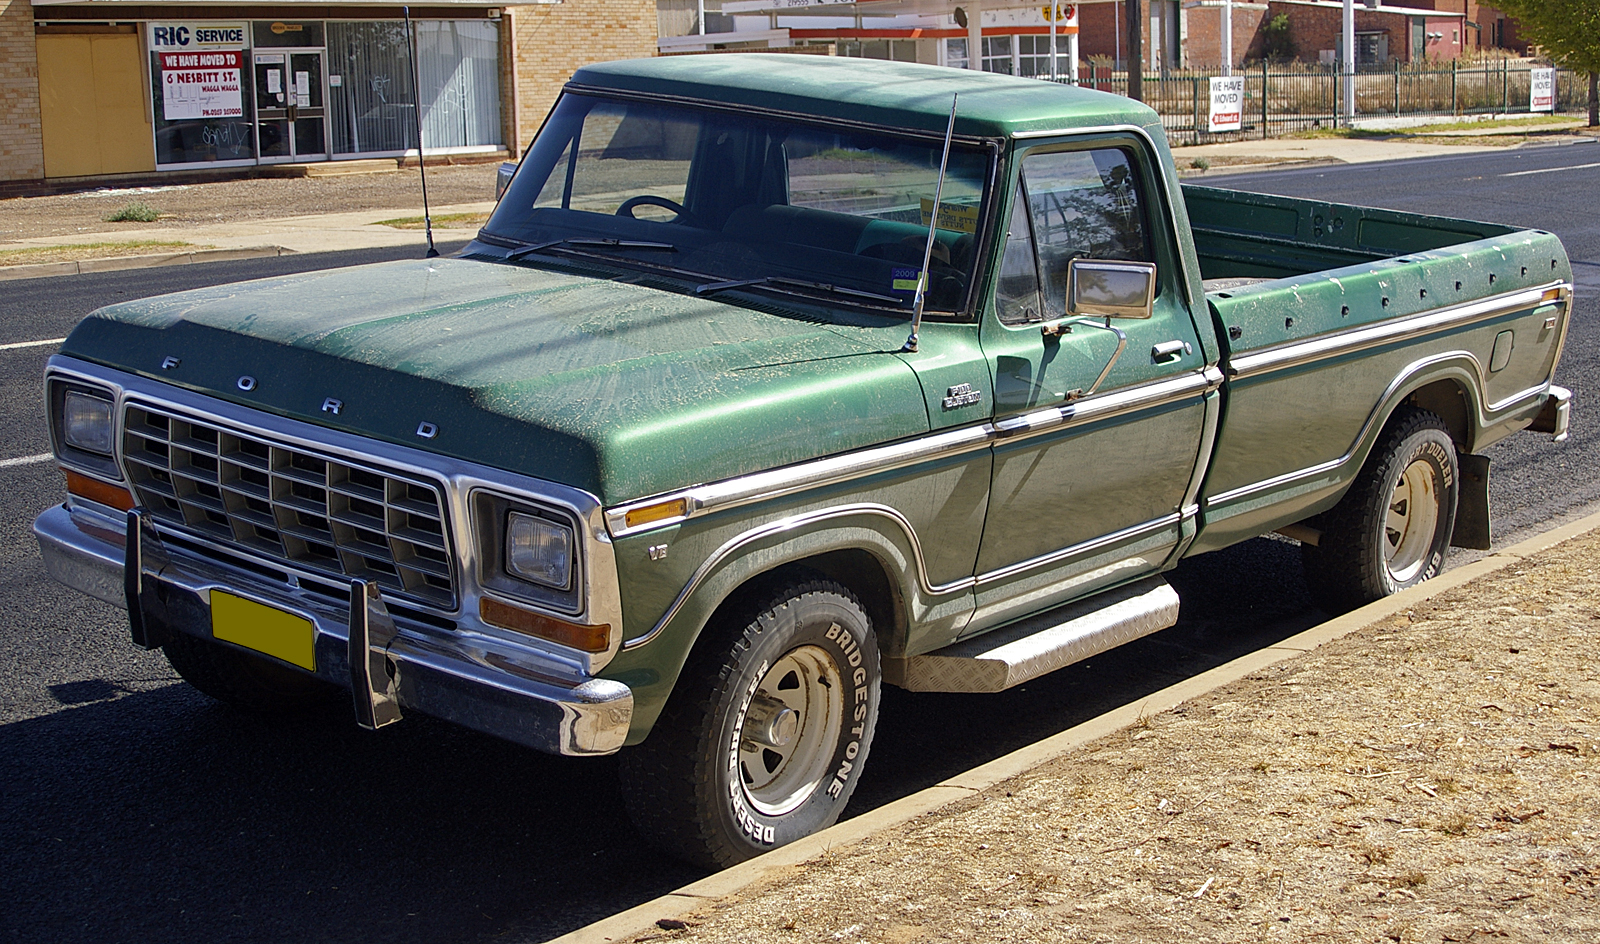 File:1980 - 81 Ford F100 Custom XLT.jpg